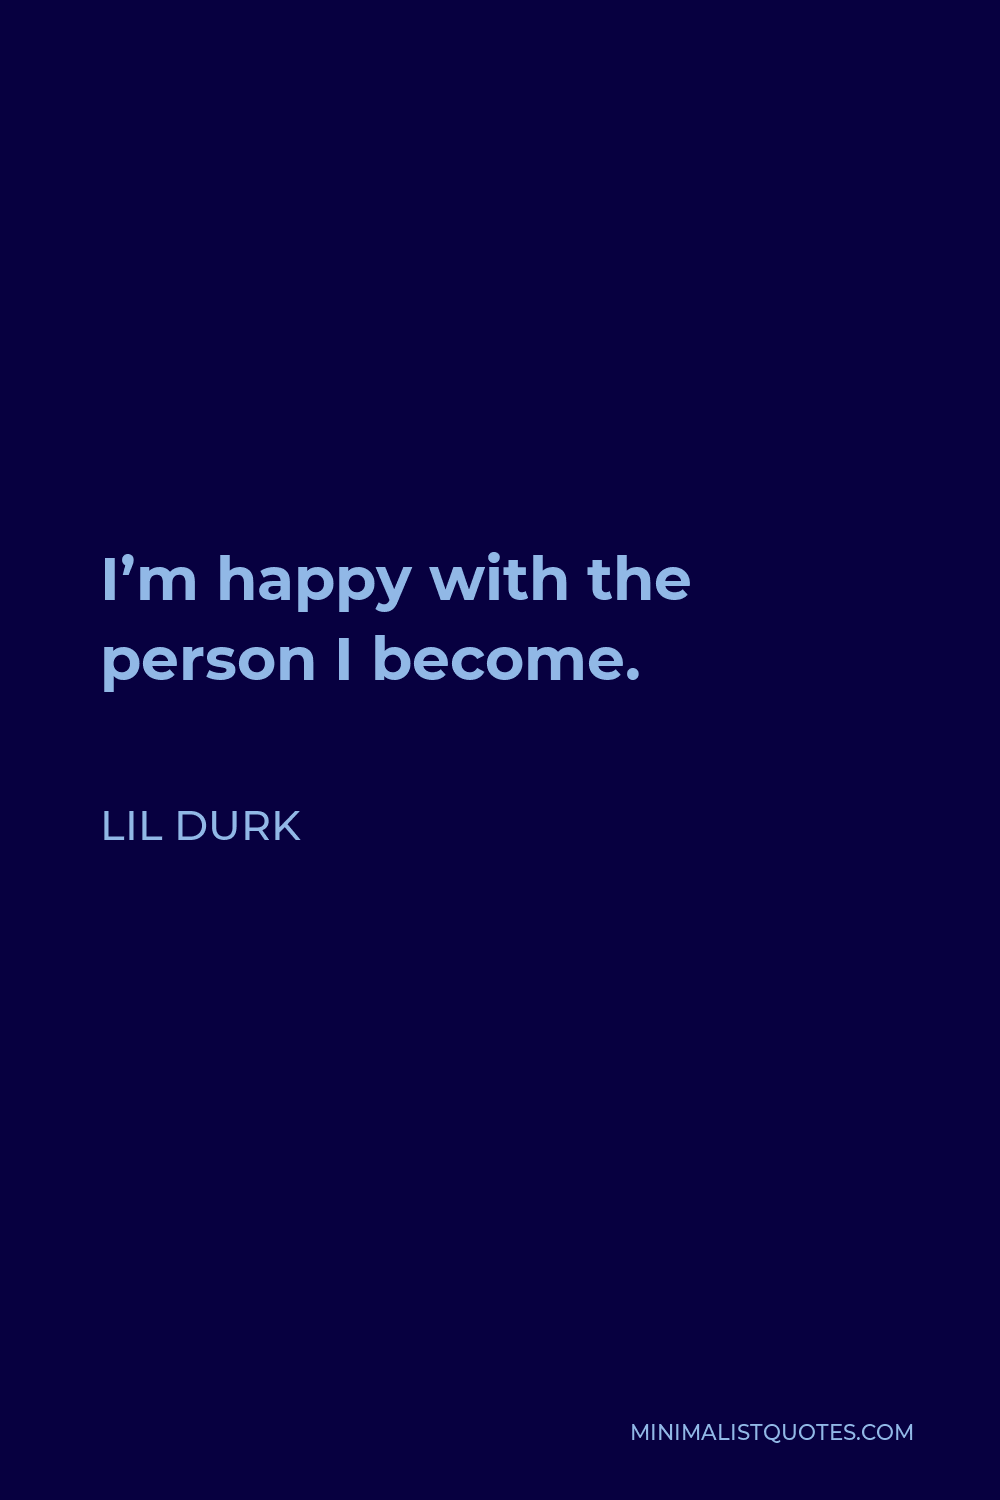 Lil Durk Quote - I'm happy with the person I become.